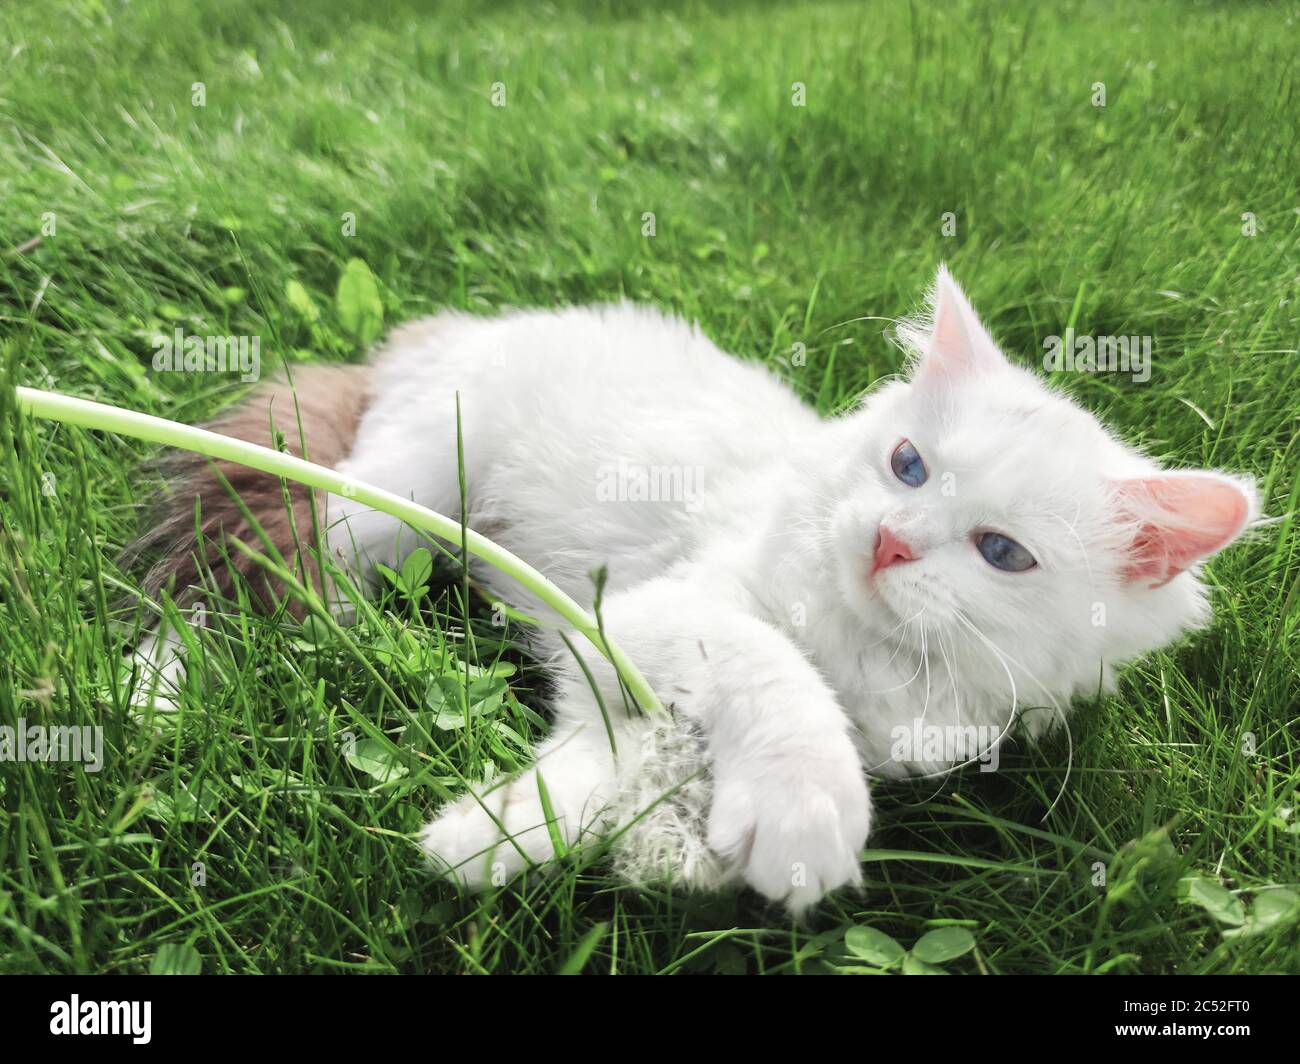 Cute White Kitten Playing With Dandelion On Green Grass Background Outdoors Beautiful Natural Wallpaper Summer Garden Scene Stock Photo Alamy